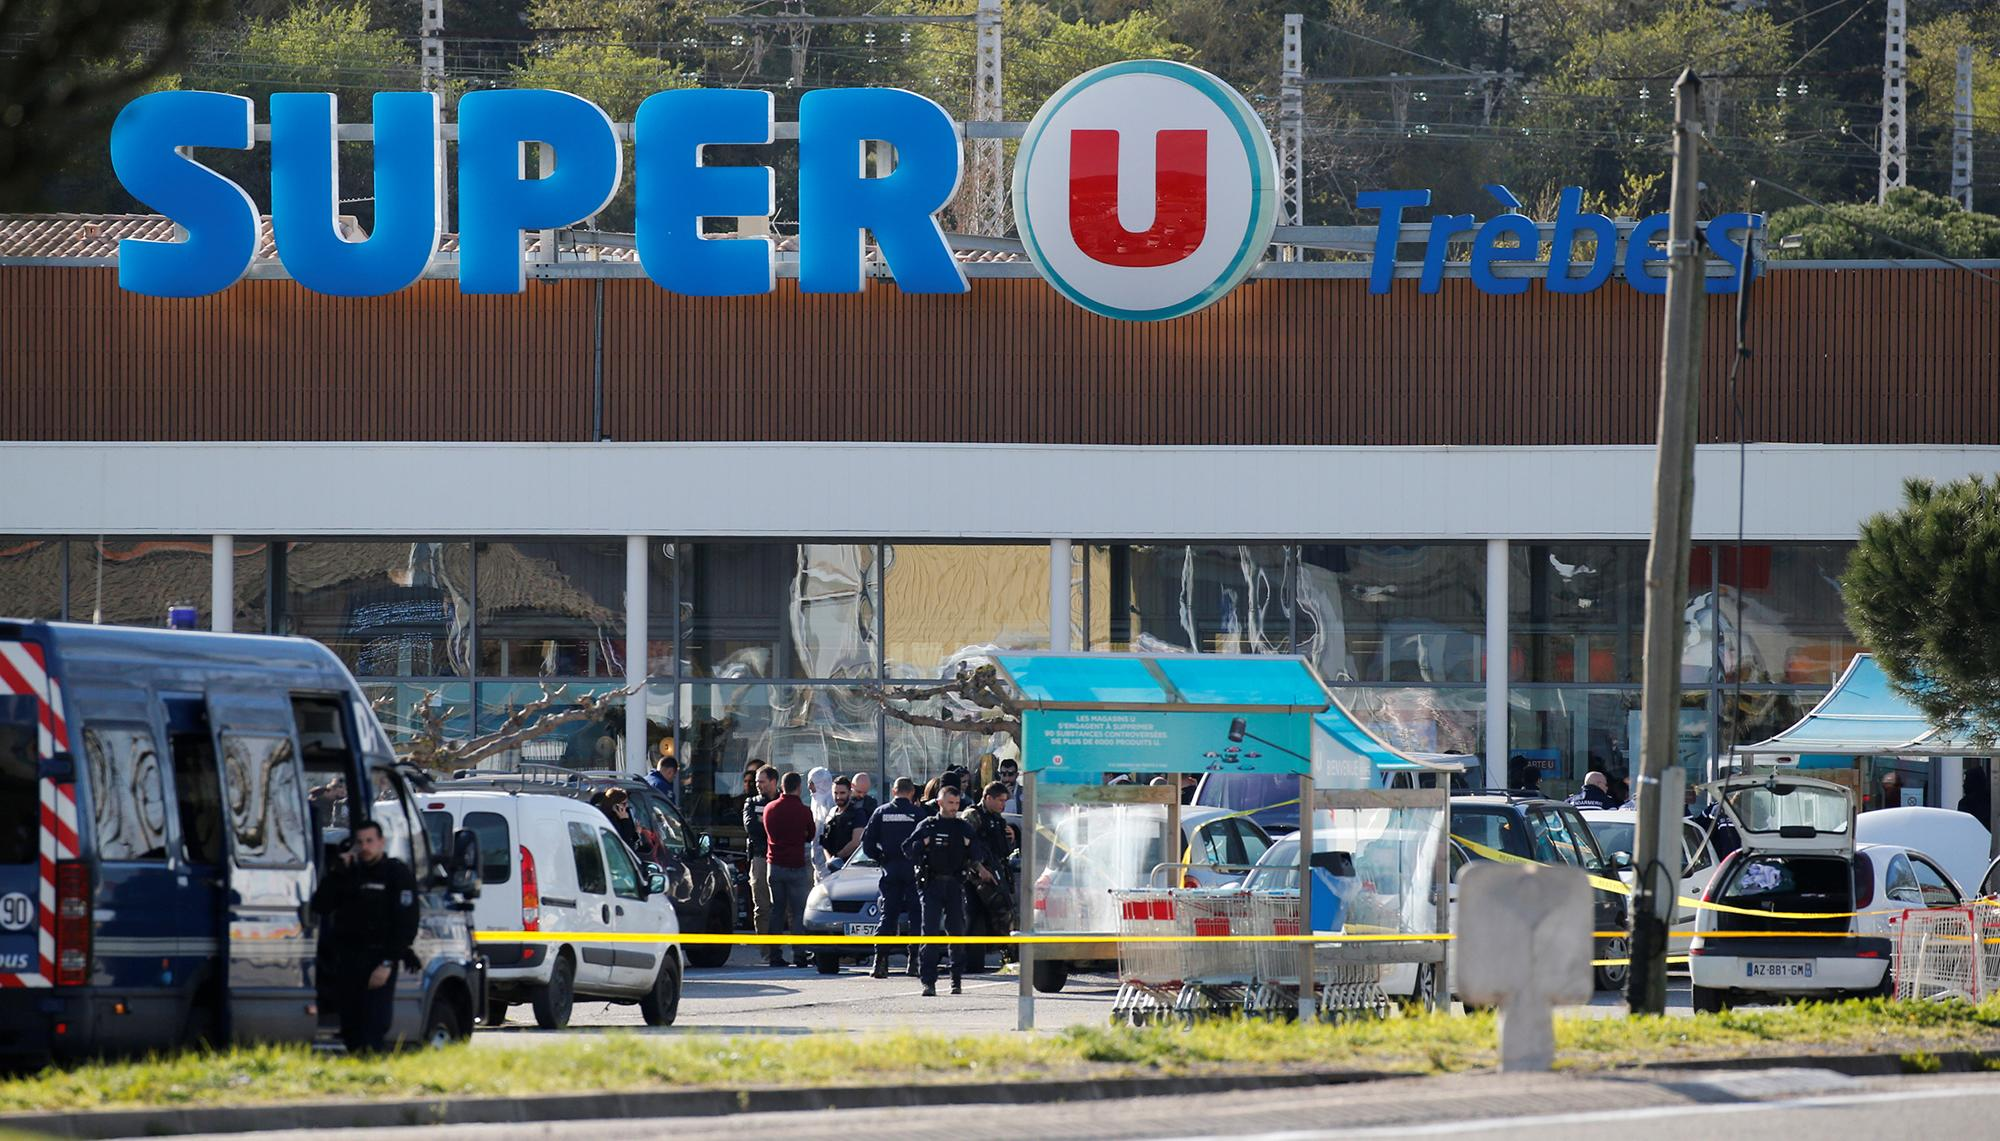 <p>A general view shows gendarmes and police officers at a supermarket after a hostage situation in Trèbes, France, March 23, 2018. (Photo: Regis Duvignau/Reuters) </p>